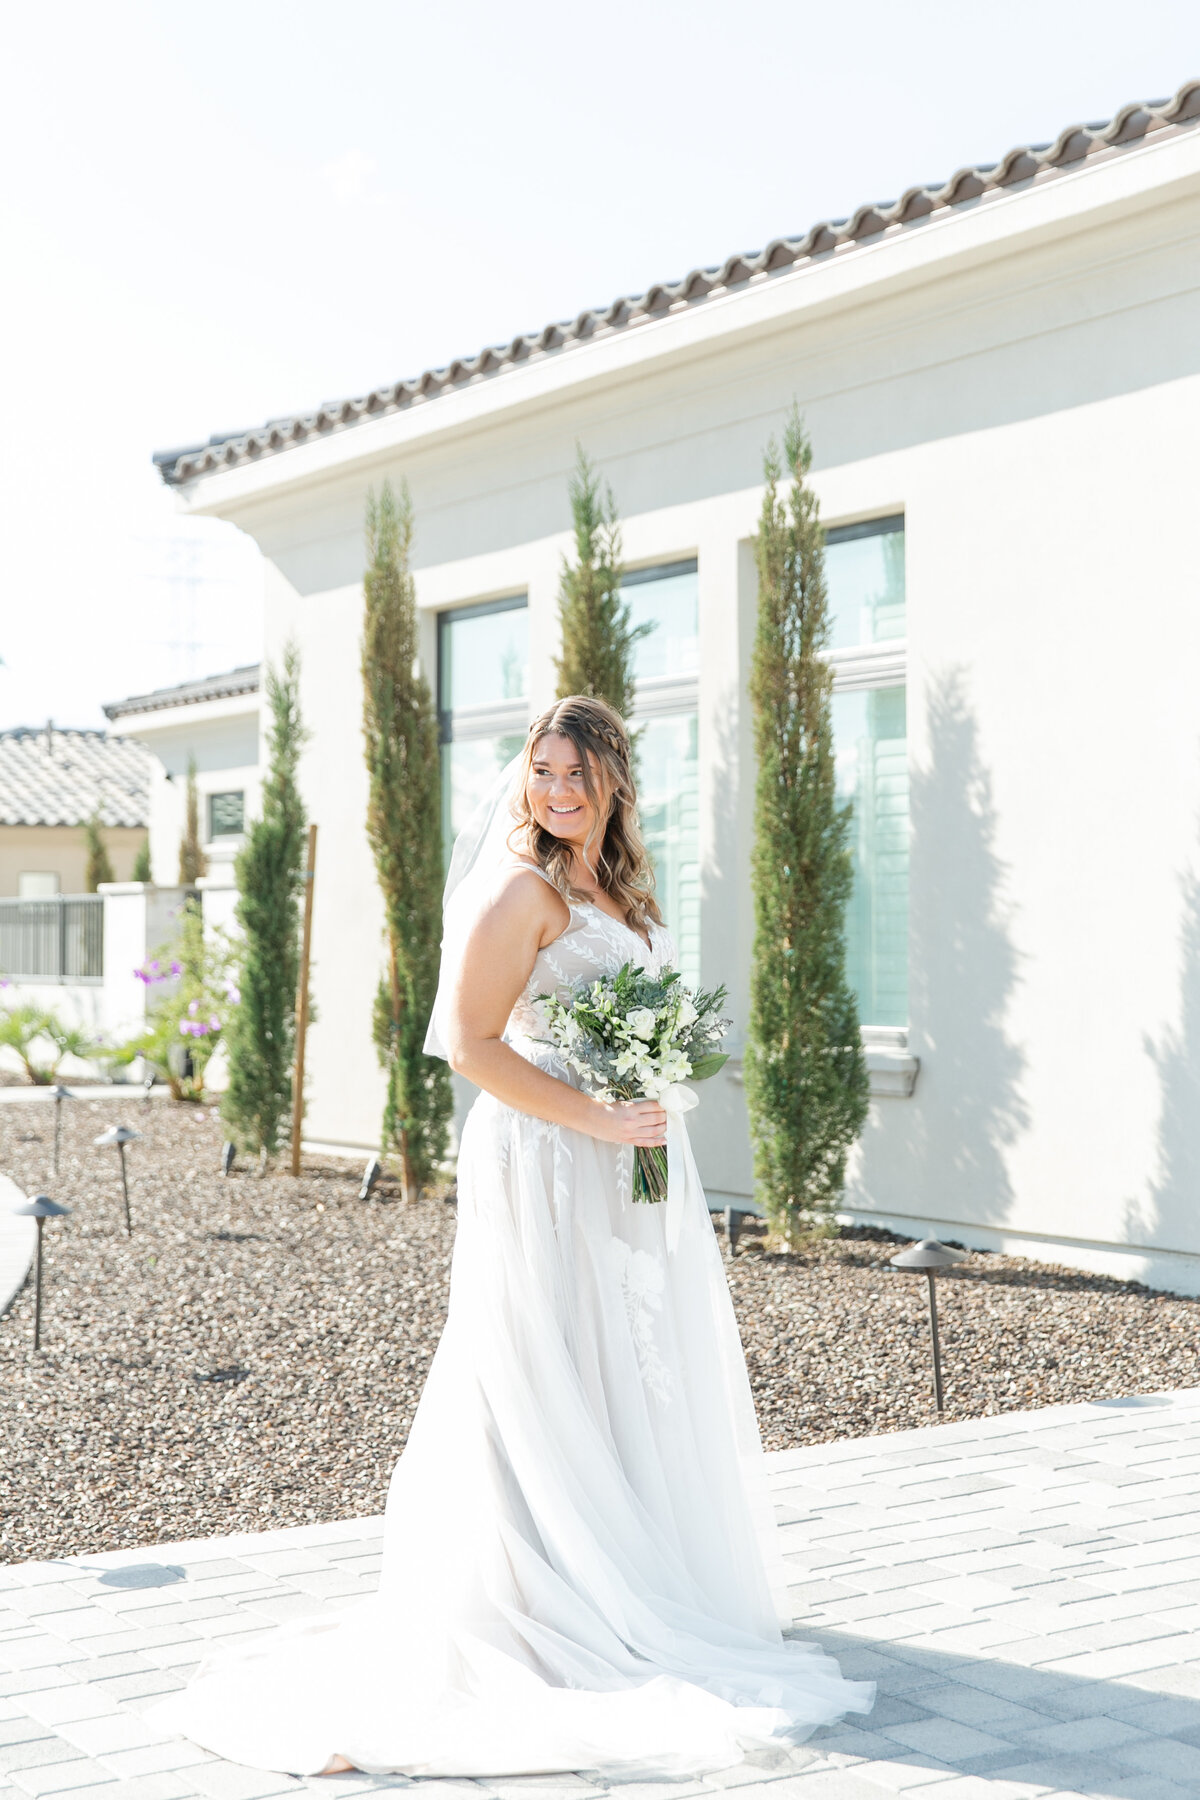 Karlie Colleen Photography - Arizona Backyard wedding - Brittney & Josh-102